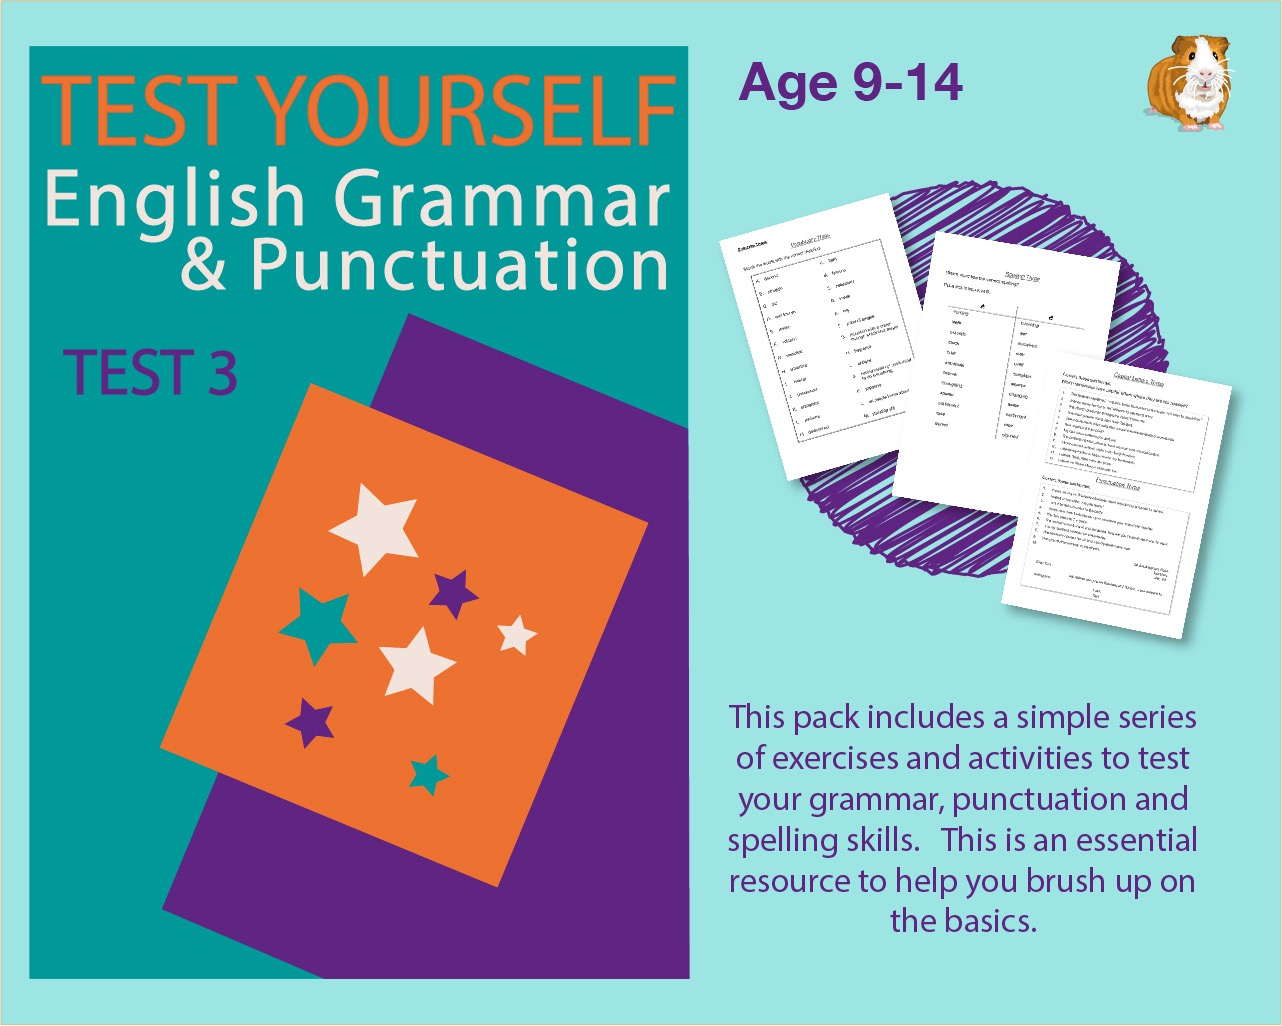 Assessment Test 3 (Test Your English Grammar And Punctuation Skills) 9-14 years